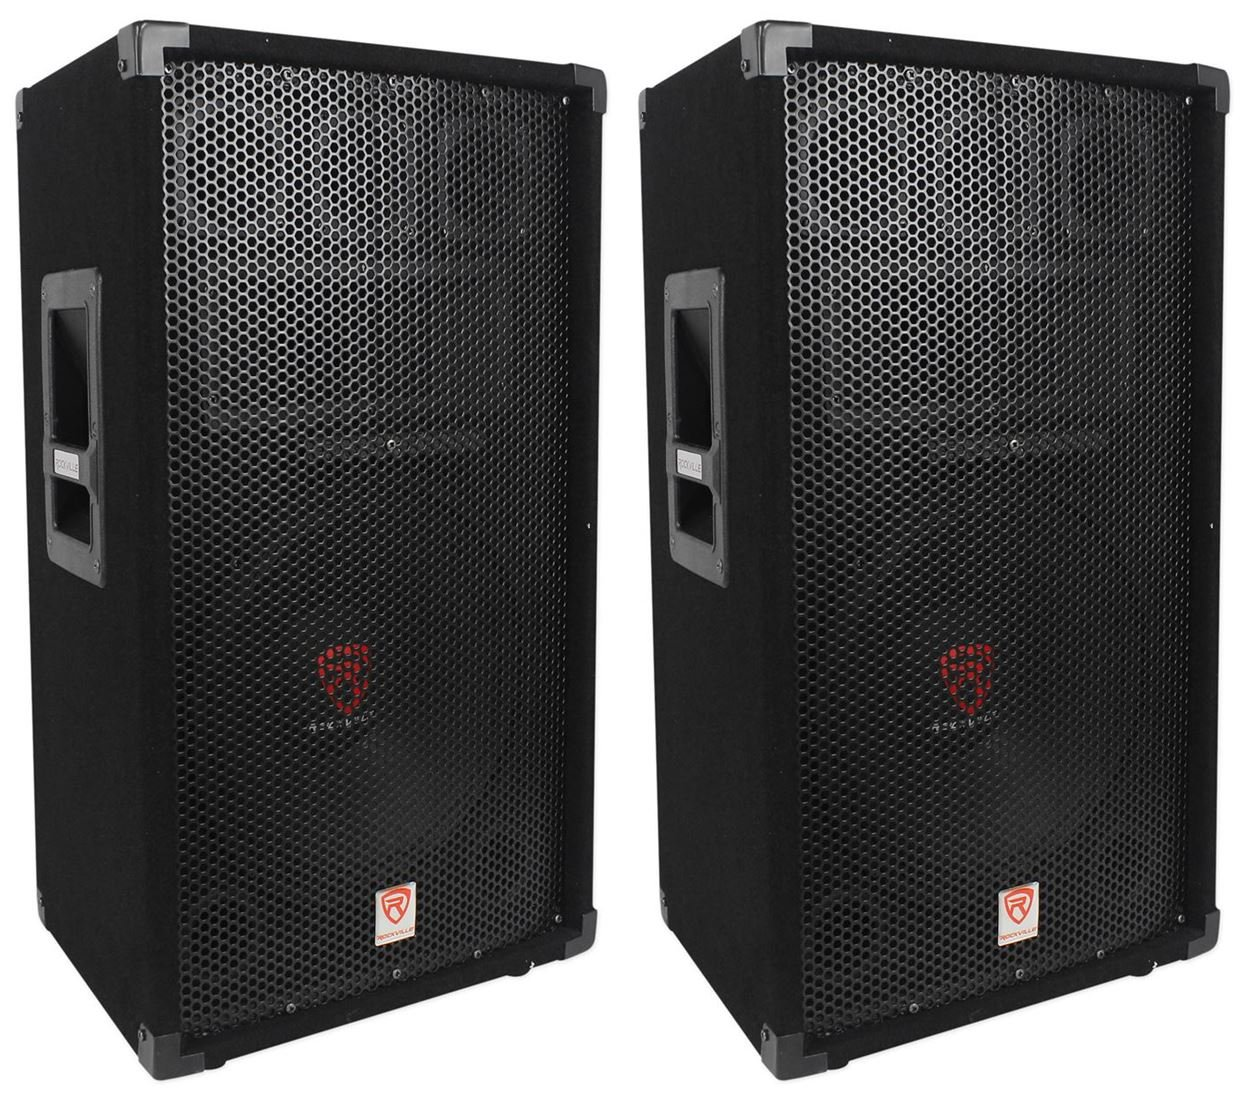 (2) Rockville RSG12 12 3-Way 1000 Watt 8-Ohm Passive DJ/Pro Audio PA Speaker 81s6UuysUgL